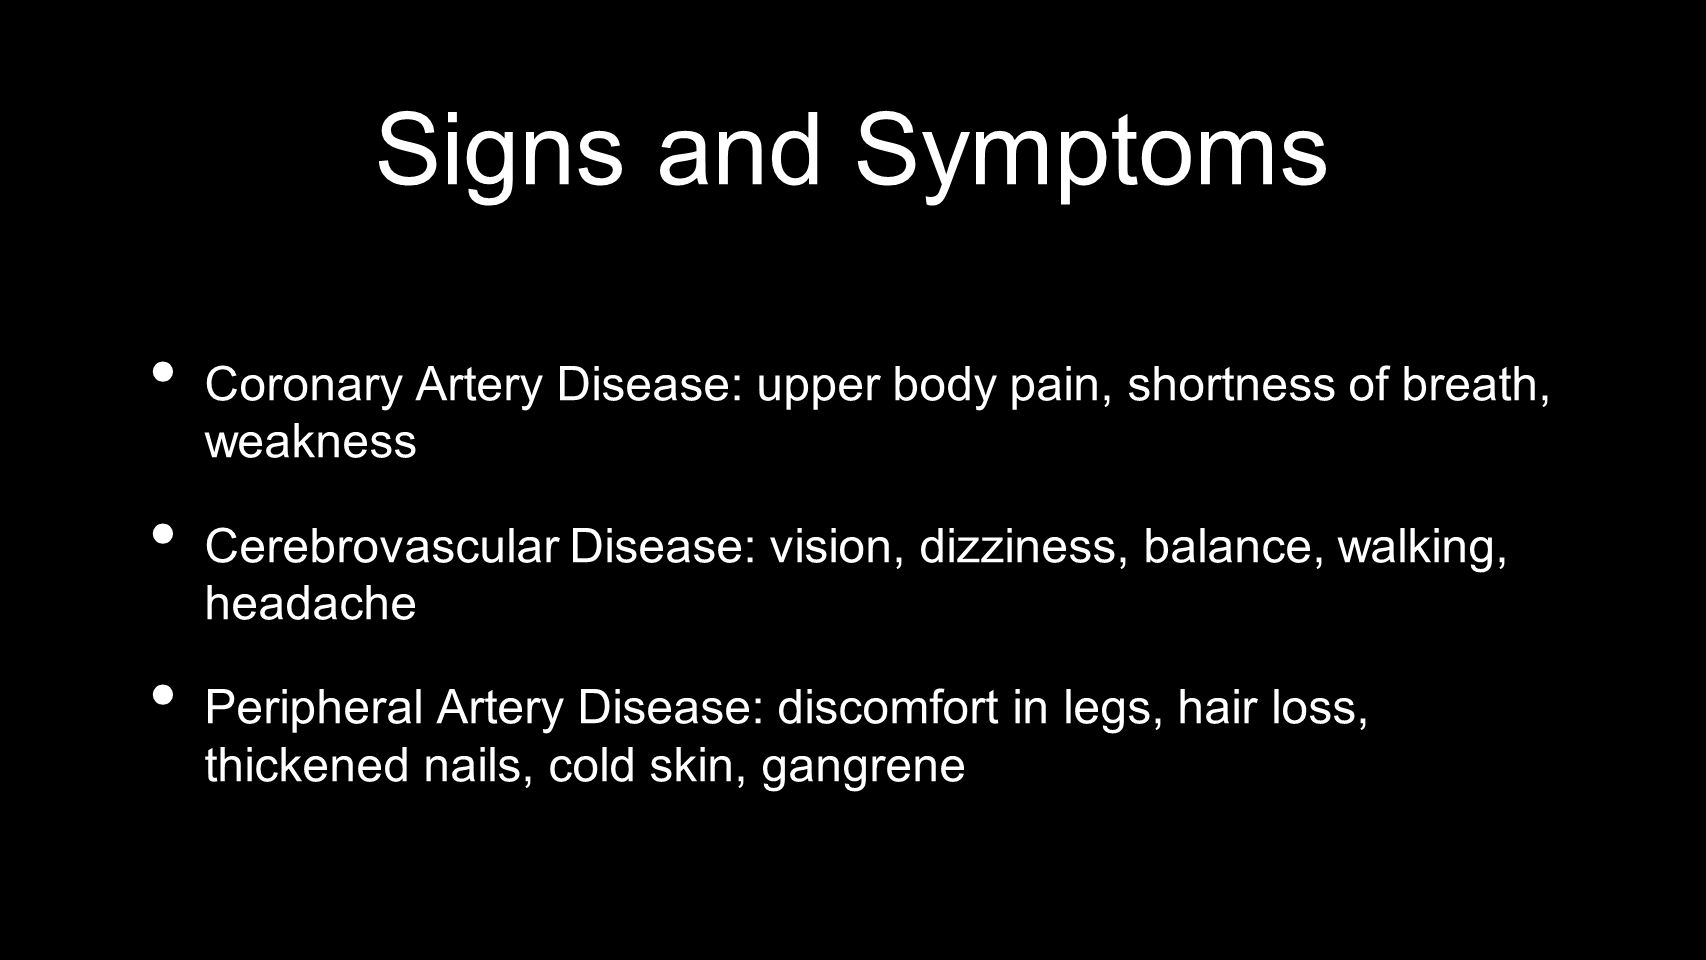 Signs and Symptoms Coronary Artery Disease: upper body pain, shortness of breath, weakness.